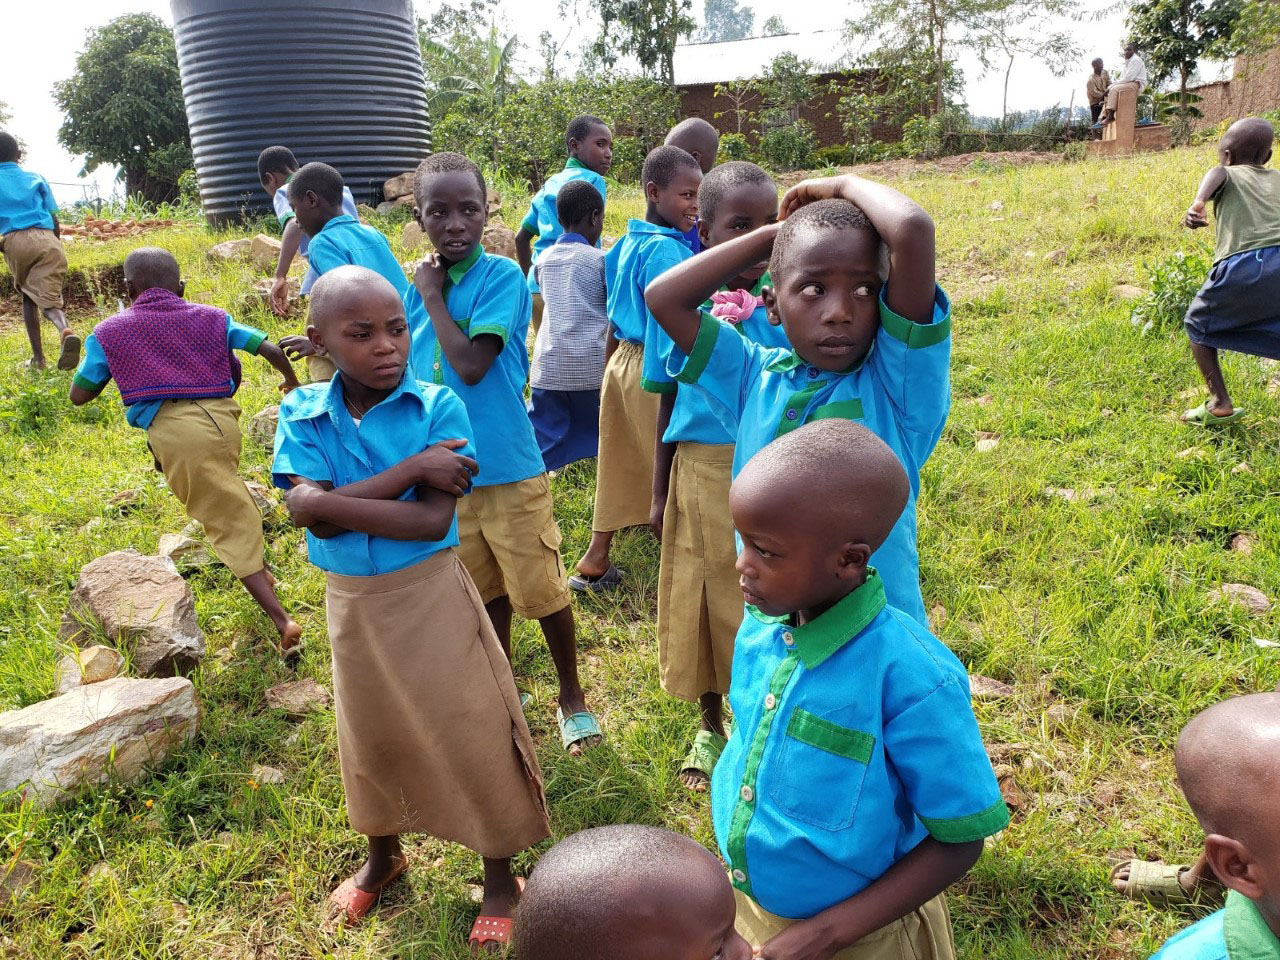 Children at Kinihira Sub-parish during recess. At the top left-hand corner the water tank that collects the rainwater. At the top right-hand corner, the unworkable water system.